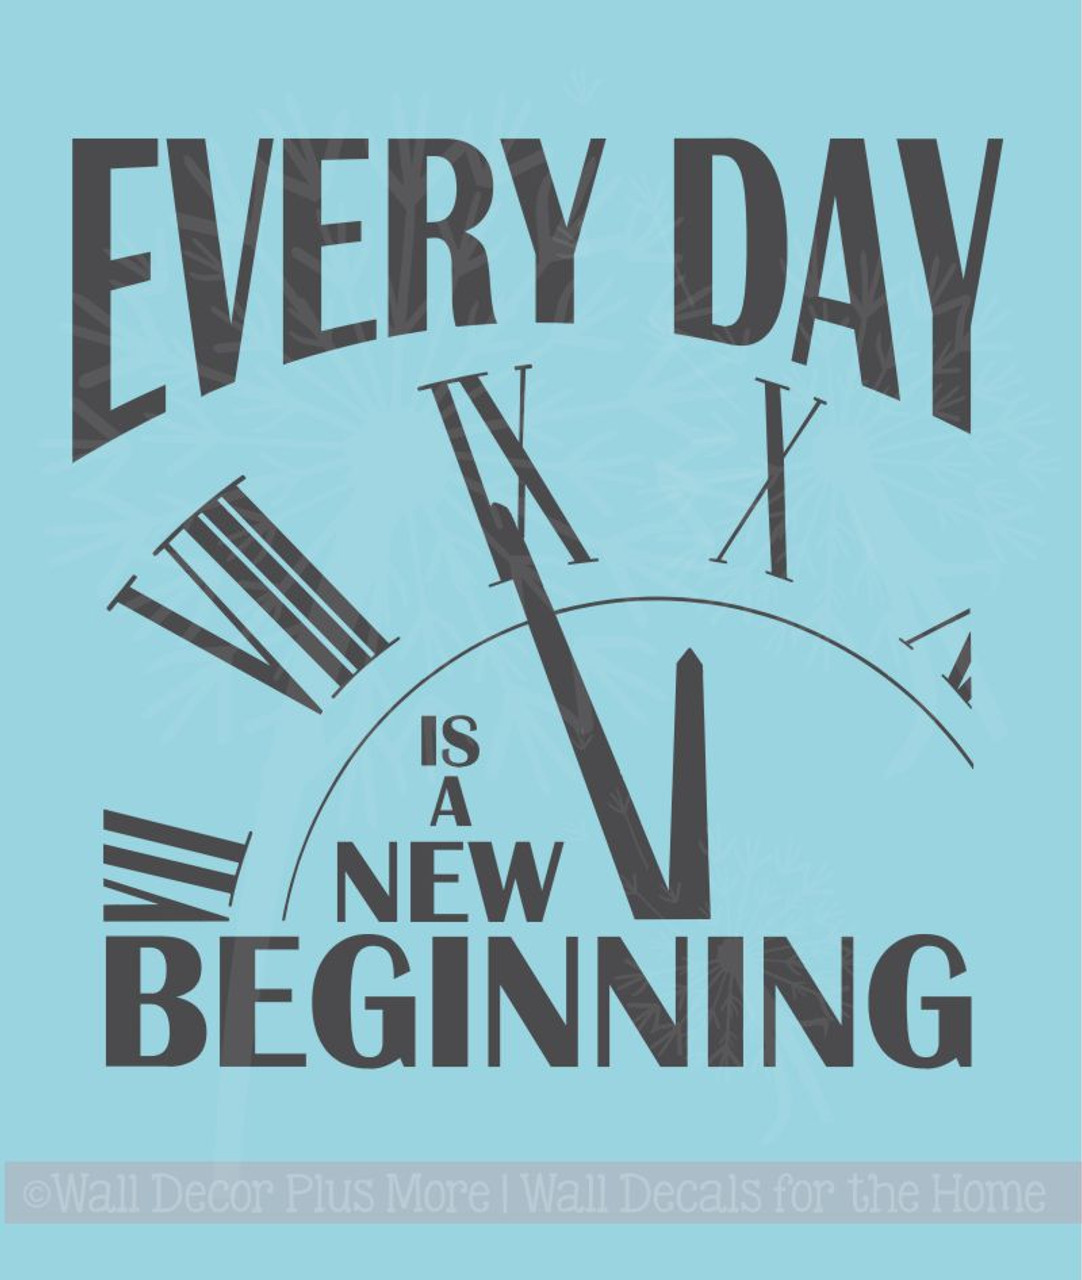 Every Day is a new Beginning Motivational Quotes Wall Decals Sticker